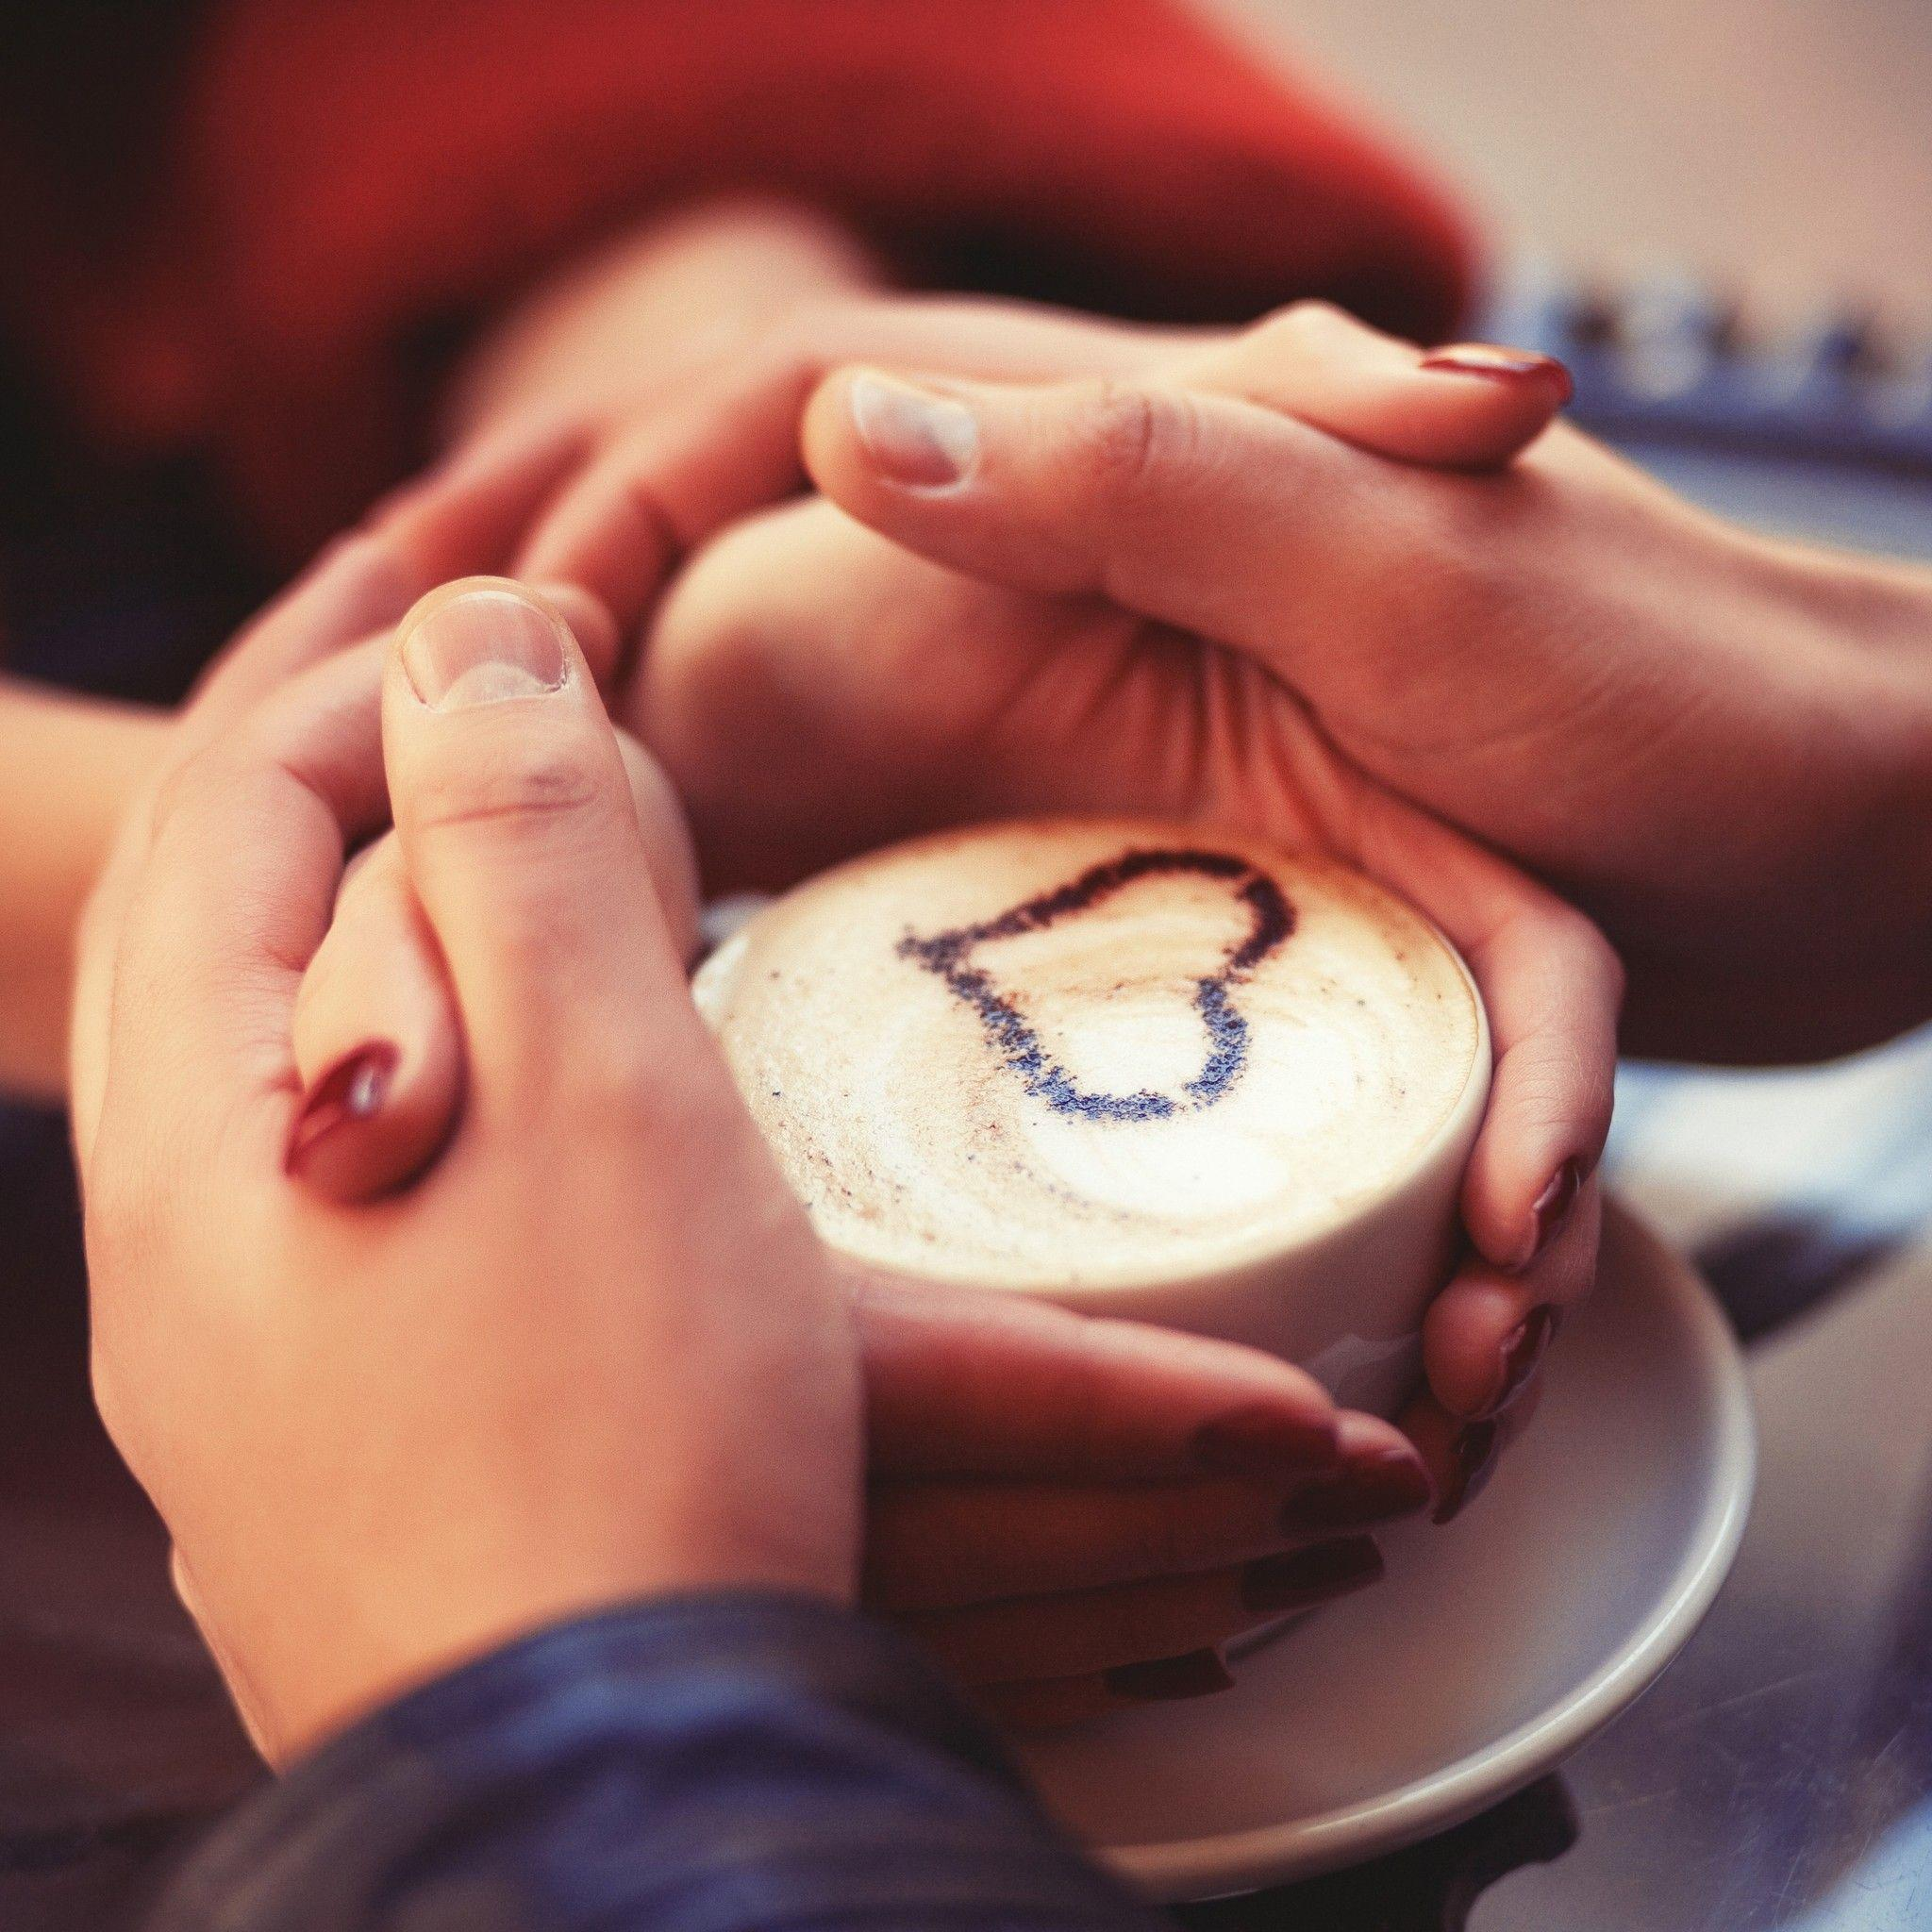 Cute Couple Holding Hand Wallpaper Holding Hands Wallpapers Wallpaper Cave